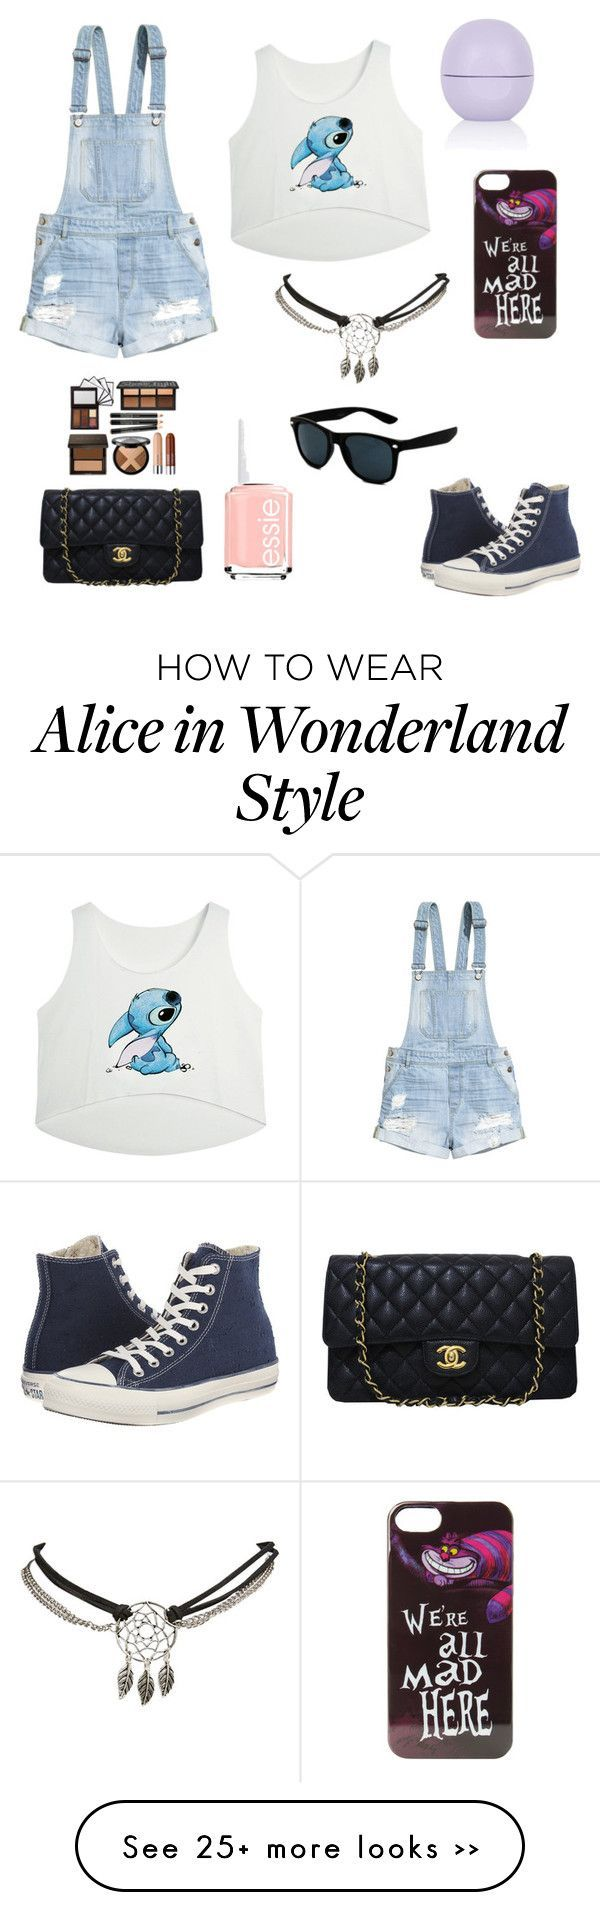 """The day at Disney"" by vcndancebattle on Polyvore featuring H&M, Converse, Disney, Wet Seal, Chanel, Topshop and Essie"